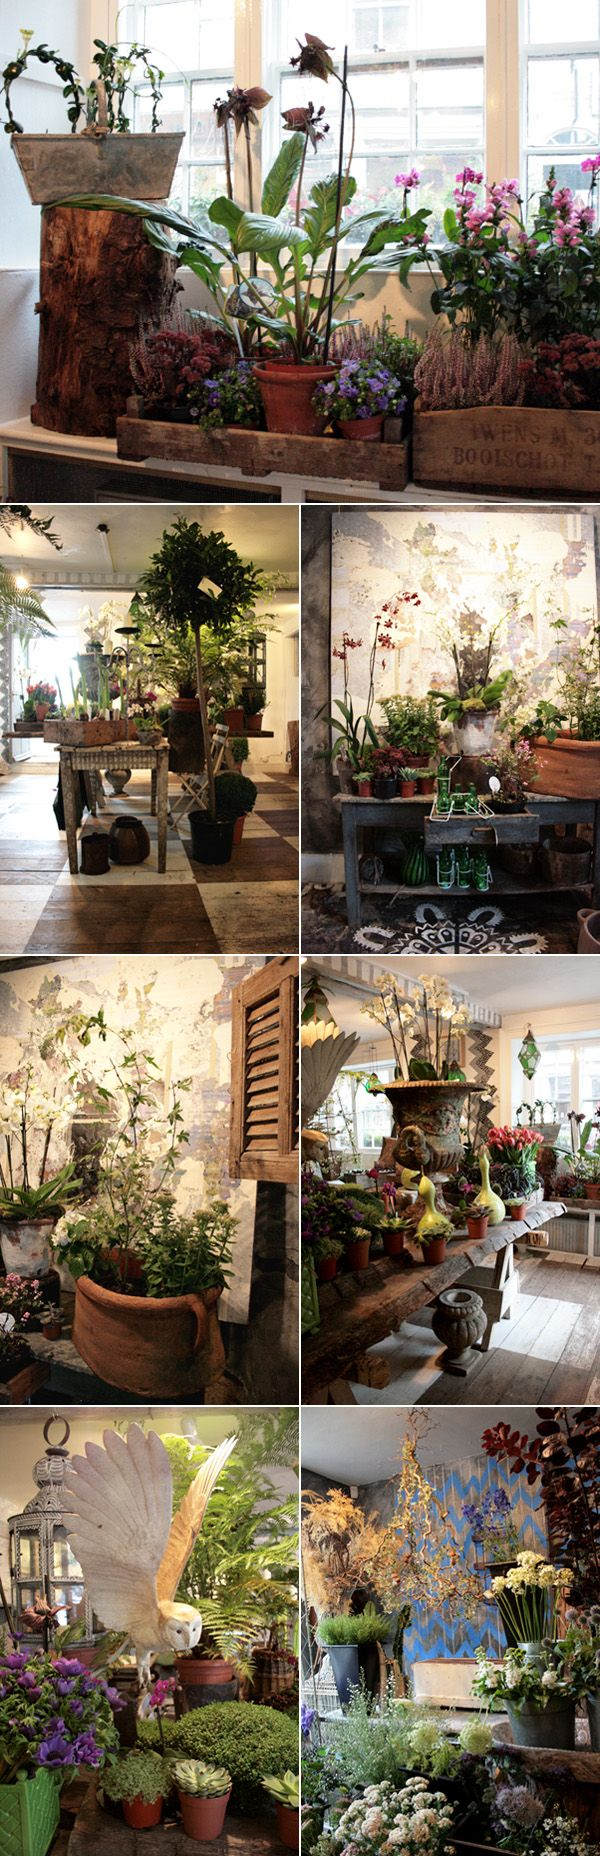 Twig florist shop in Tetbury, UK